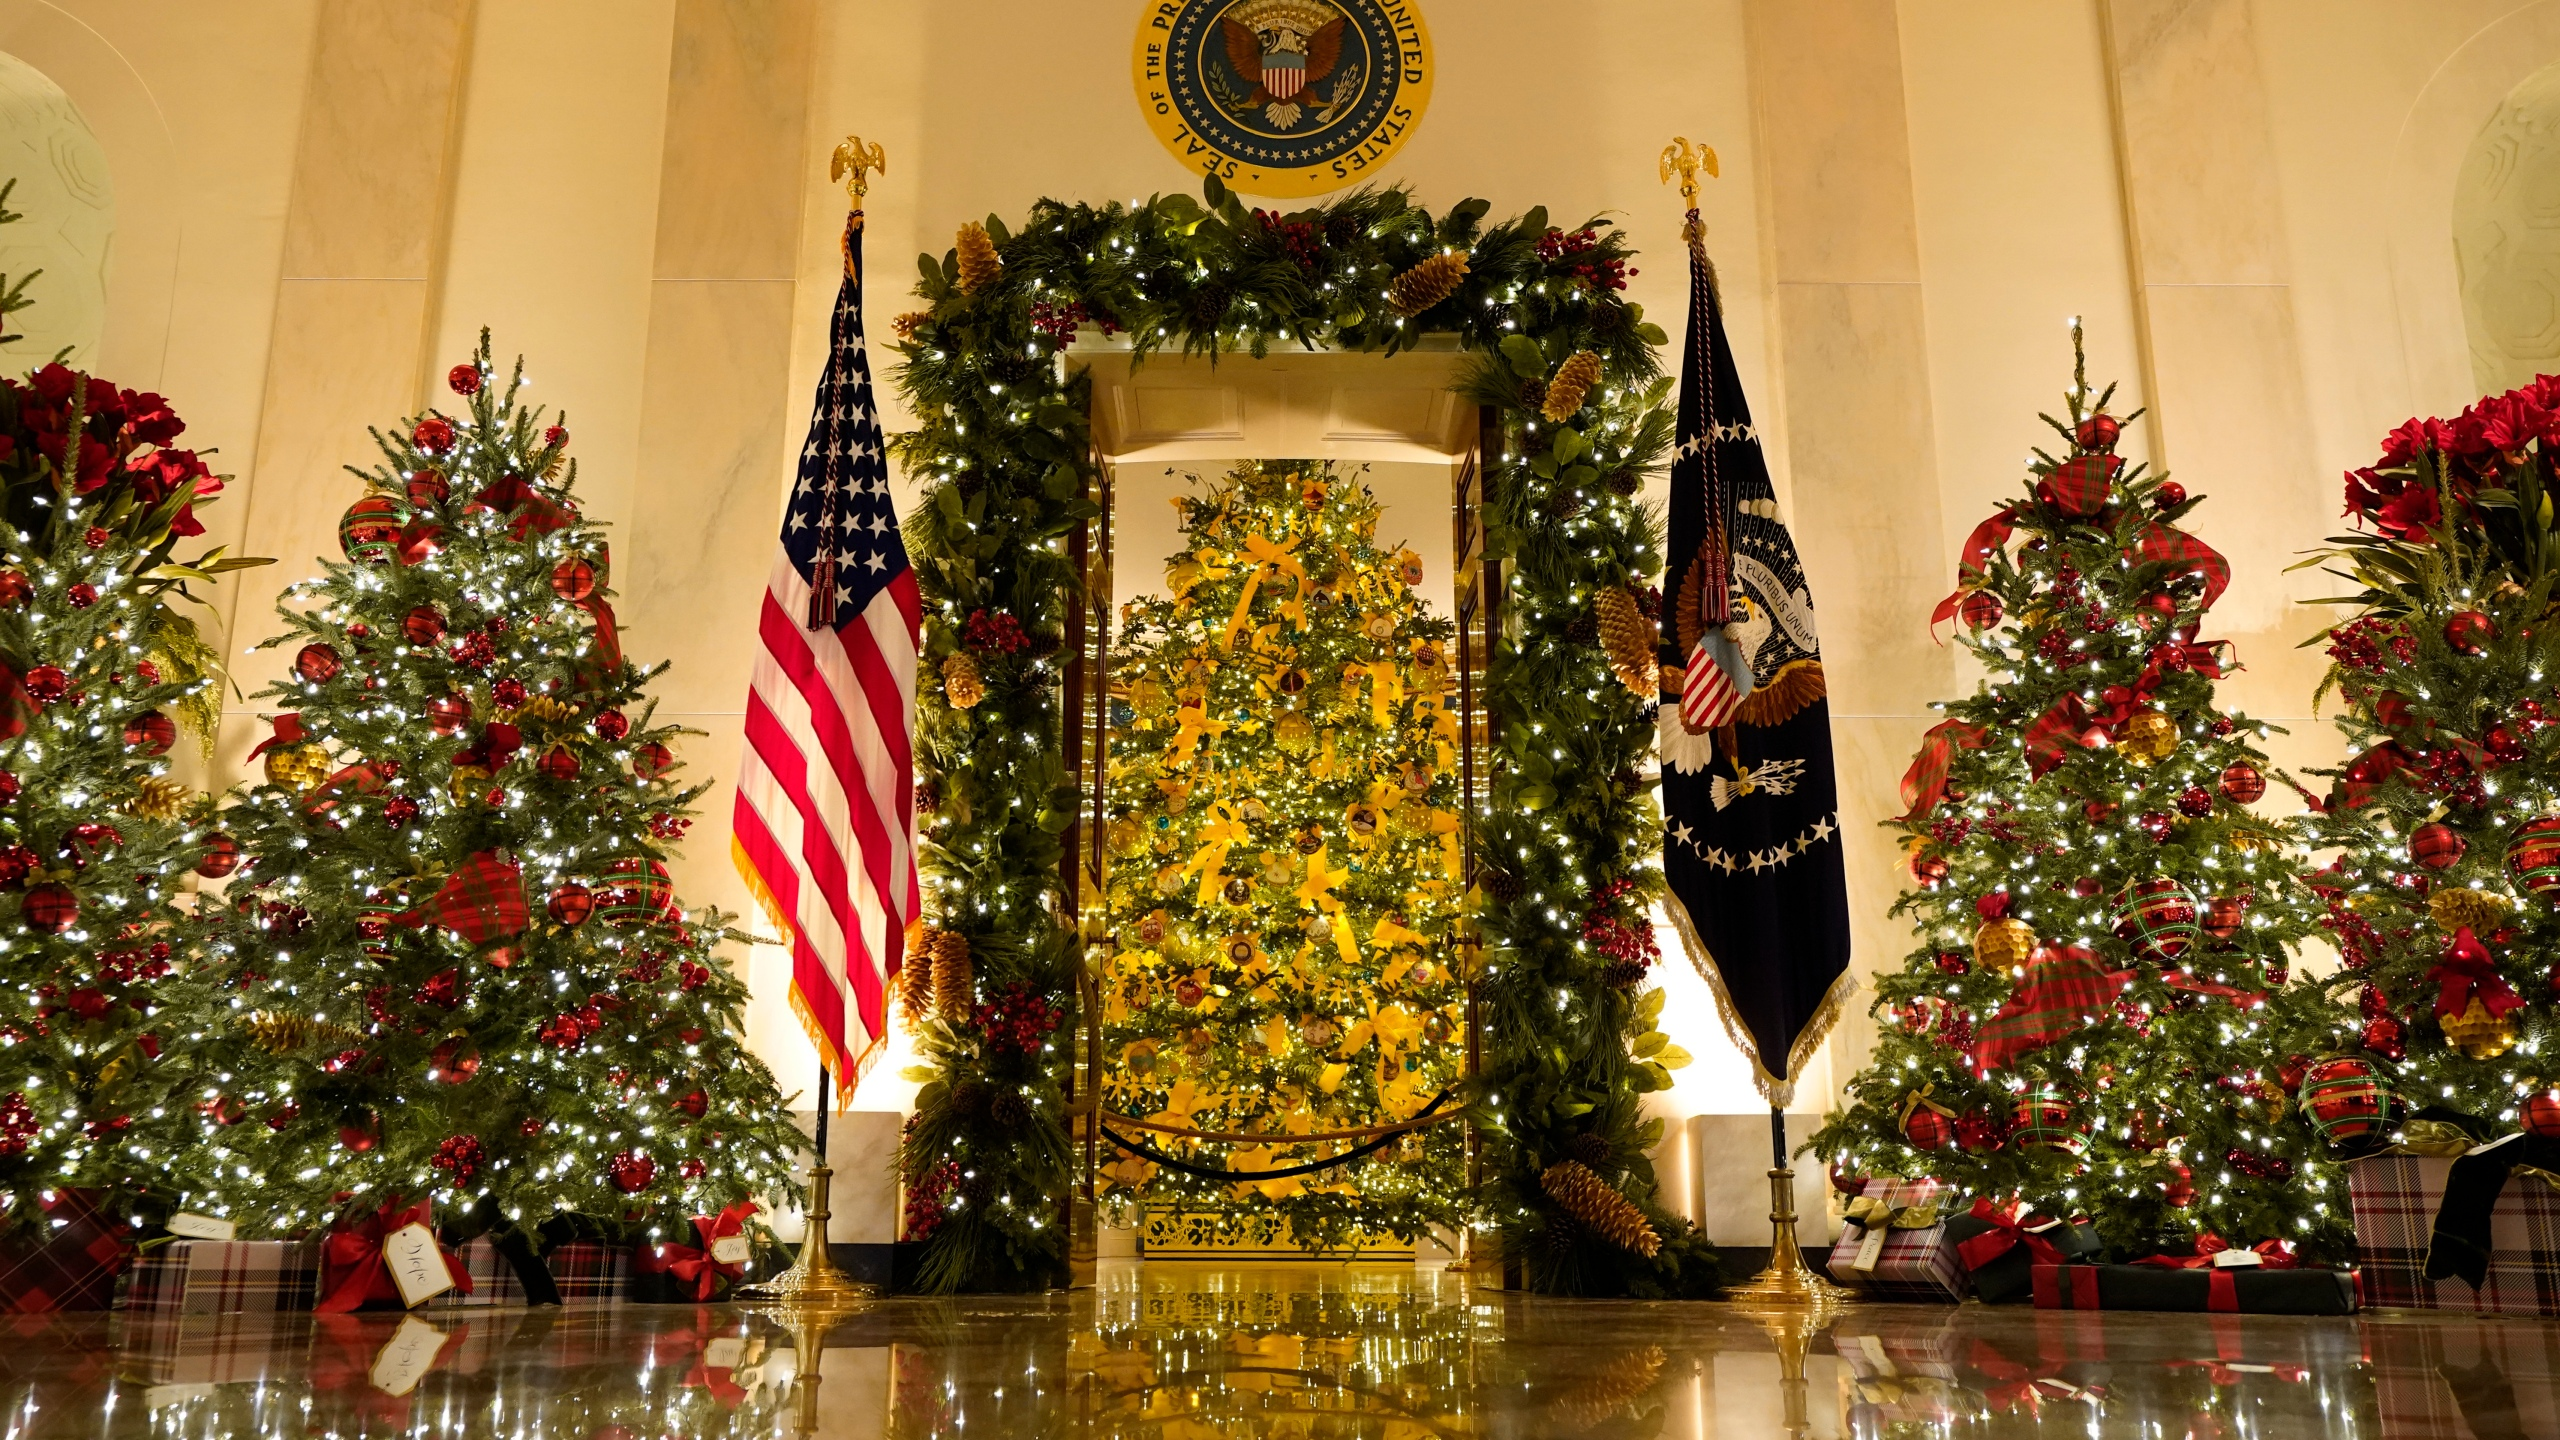 White House Christmas decor gives nod to 1st responders | ABC27